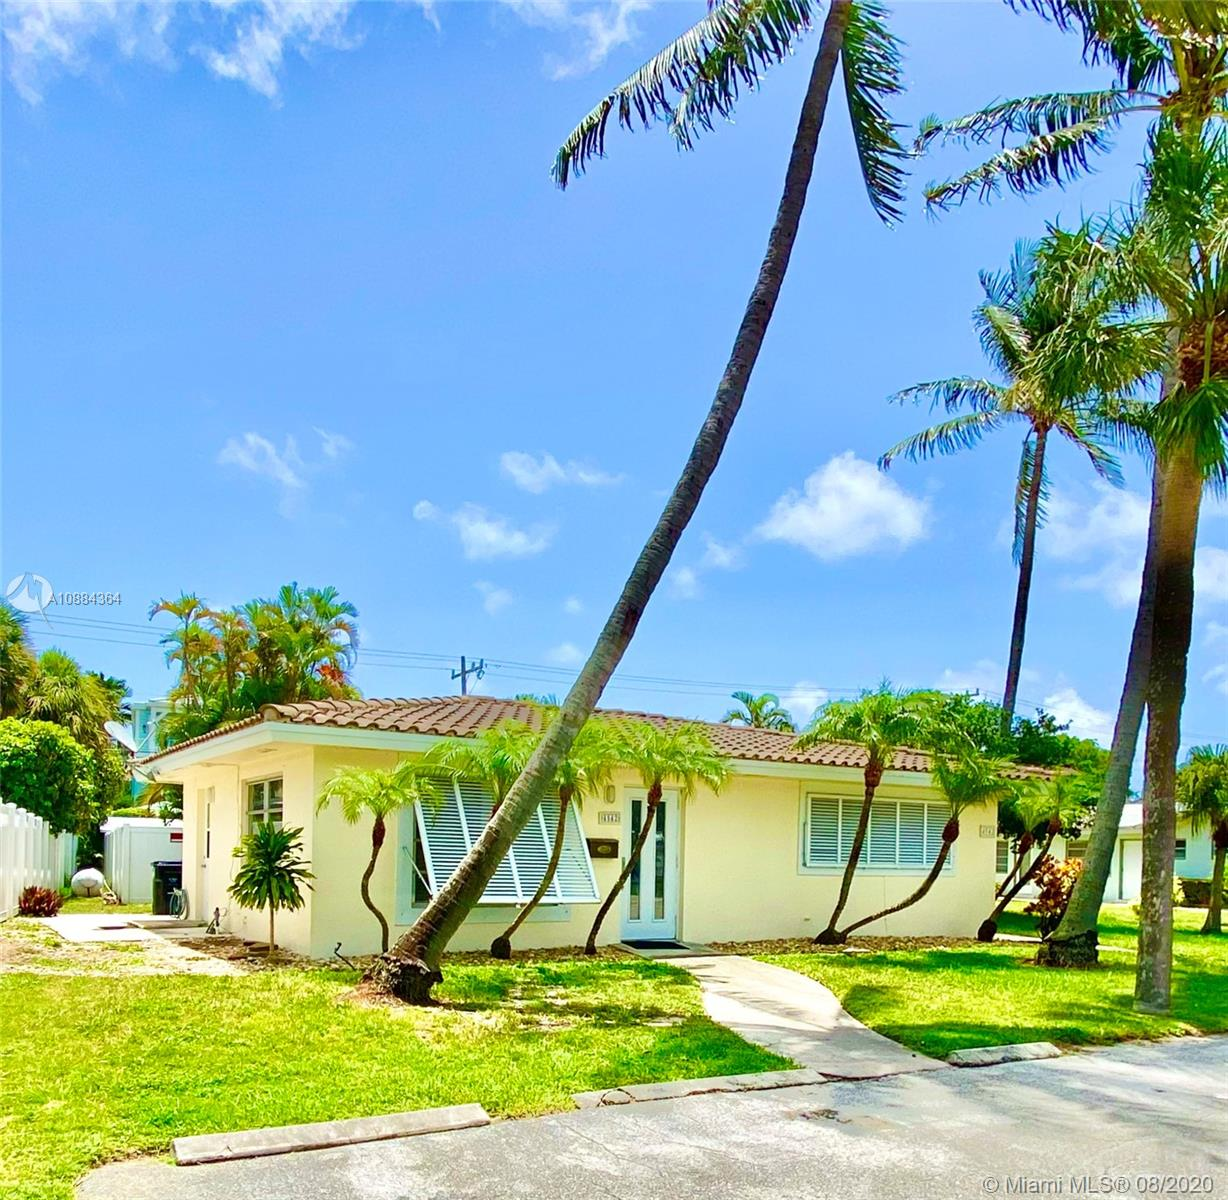 Details for 4542 Seagrape Dr, Lauderdale By The Sea, FL 33308